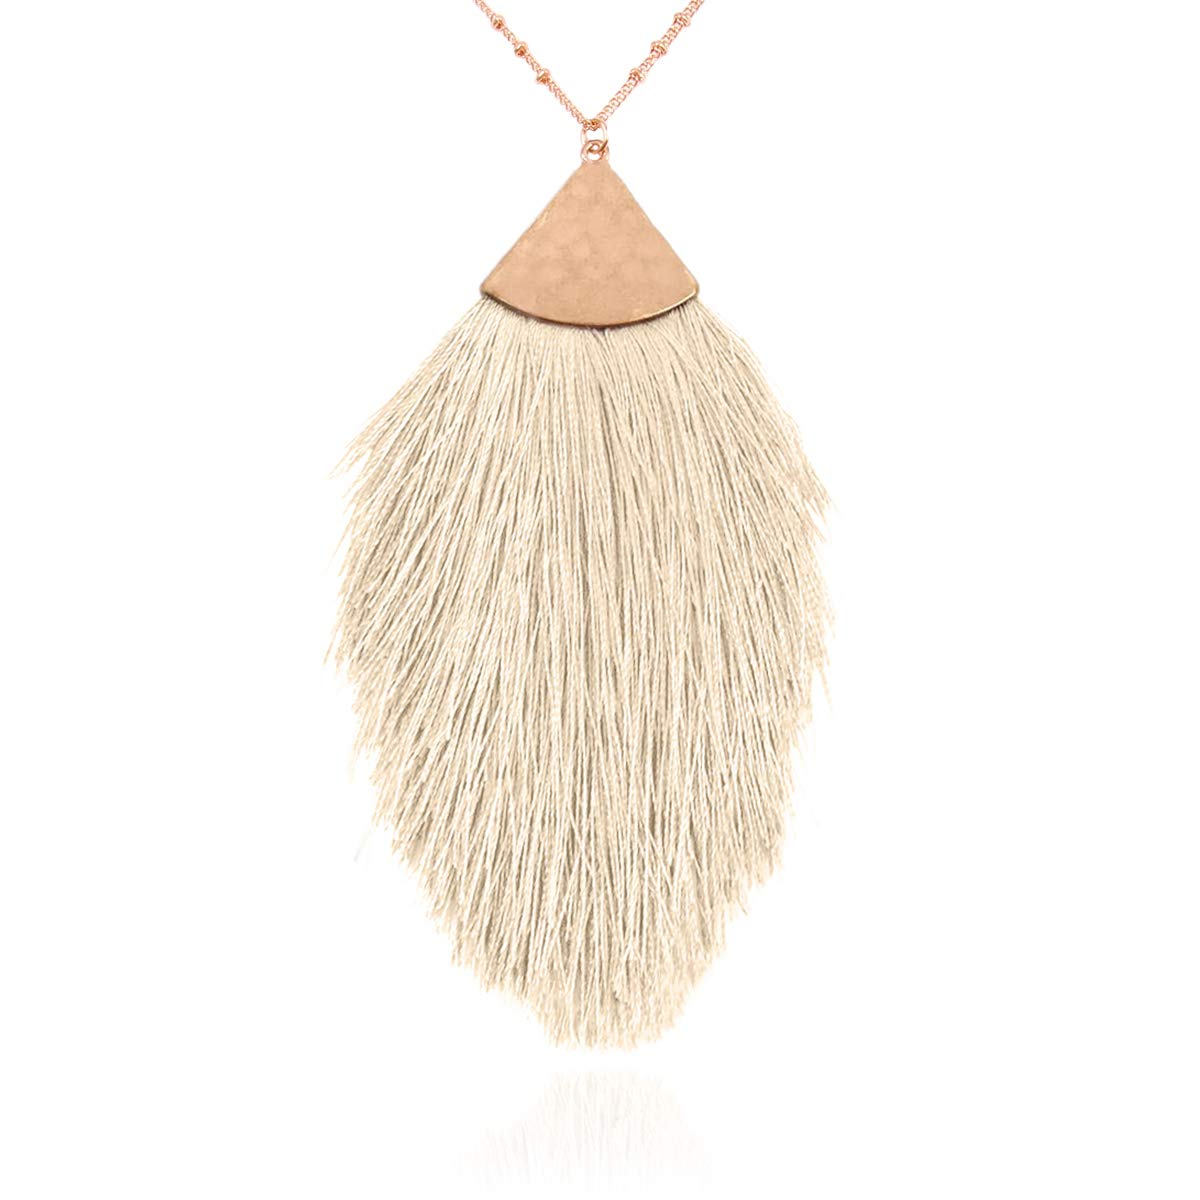 RIAH FASHION Antique Bohemian Silky Thread Fan Tassel Statement Necklace - Vintage Gold Feather Shape Strand Fringe Lightweight Long Chain (Feather Fringe - White) by RIAH FASHION